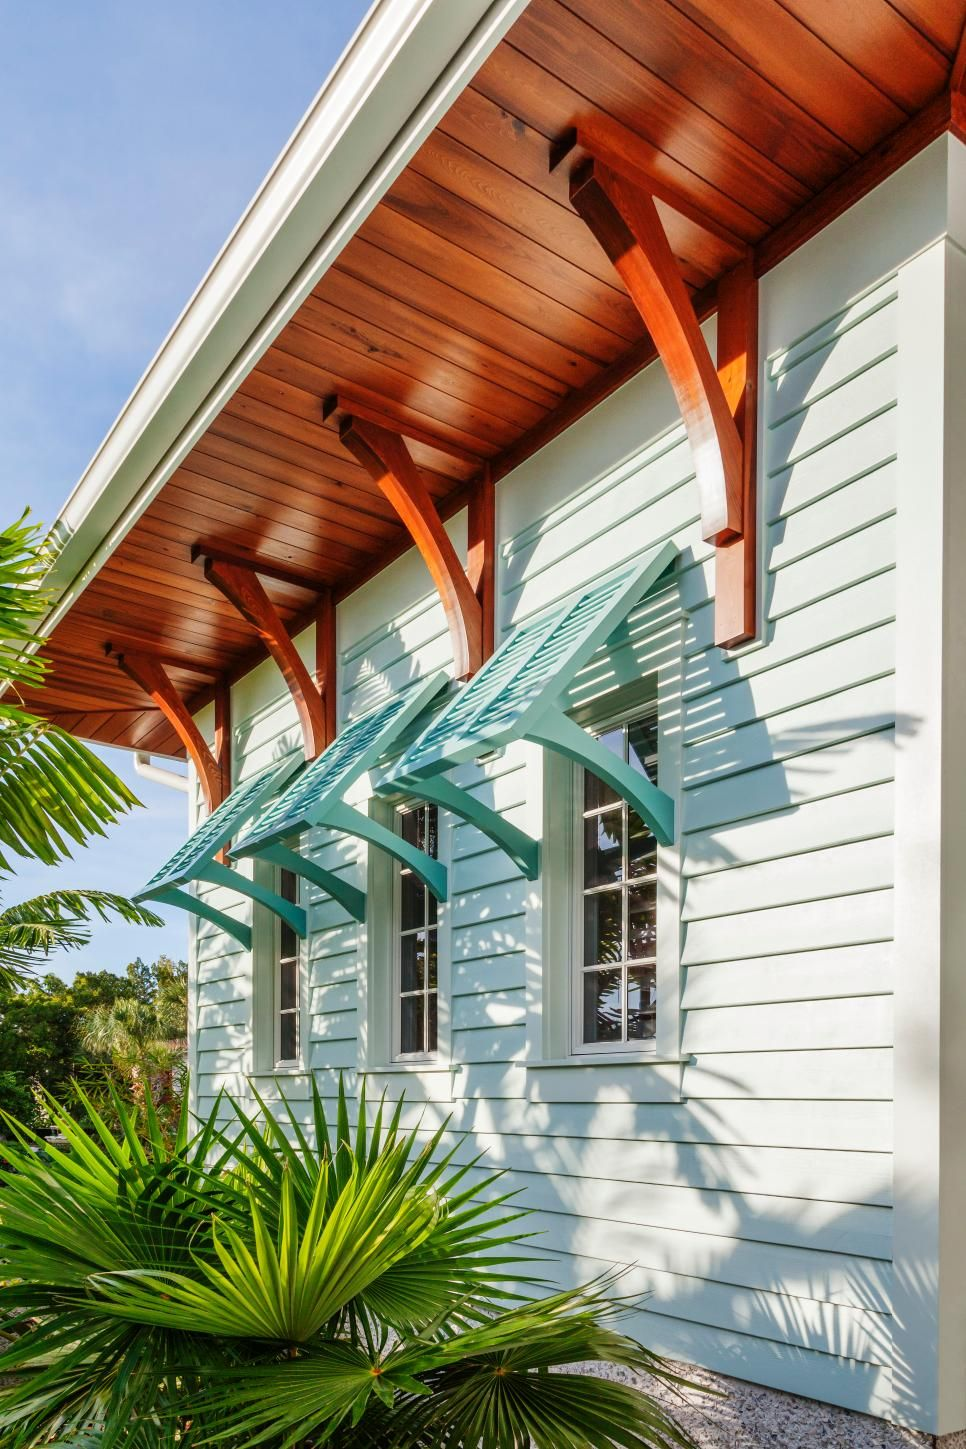 Horizontal siding colorful bahama shutters a beautiful for Spanish style interior shutters